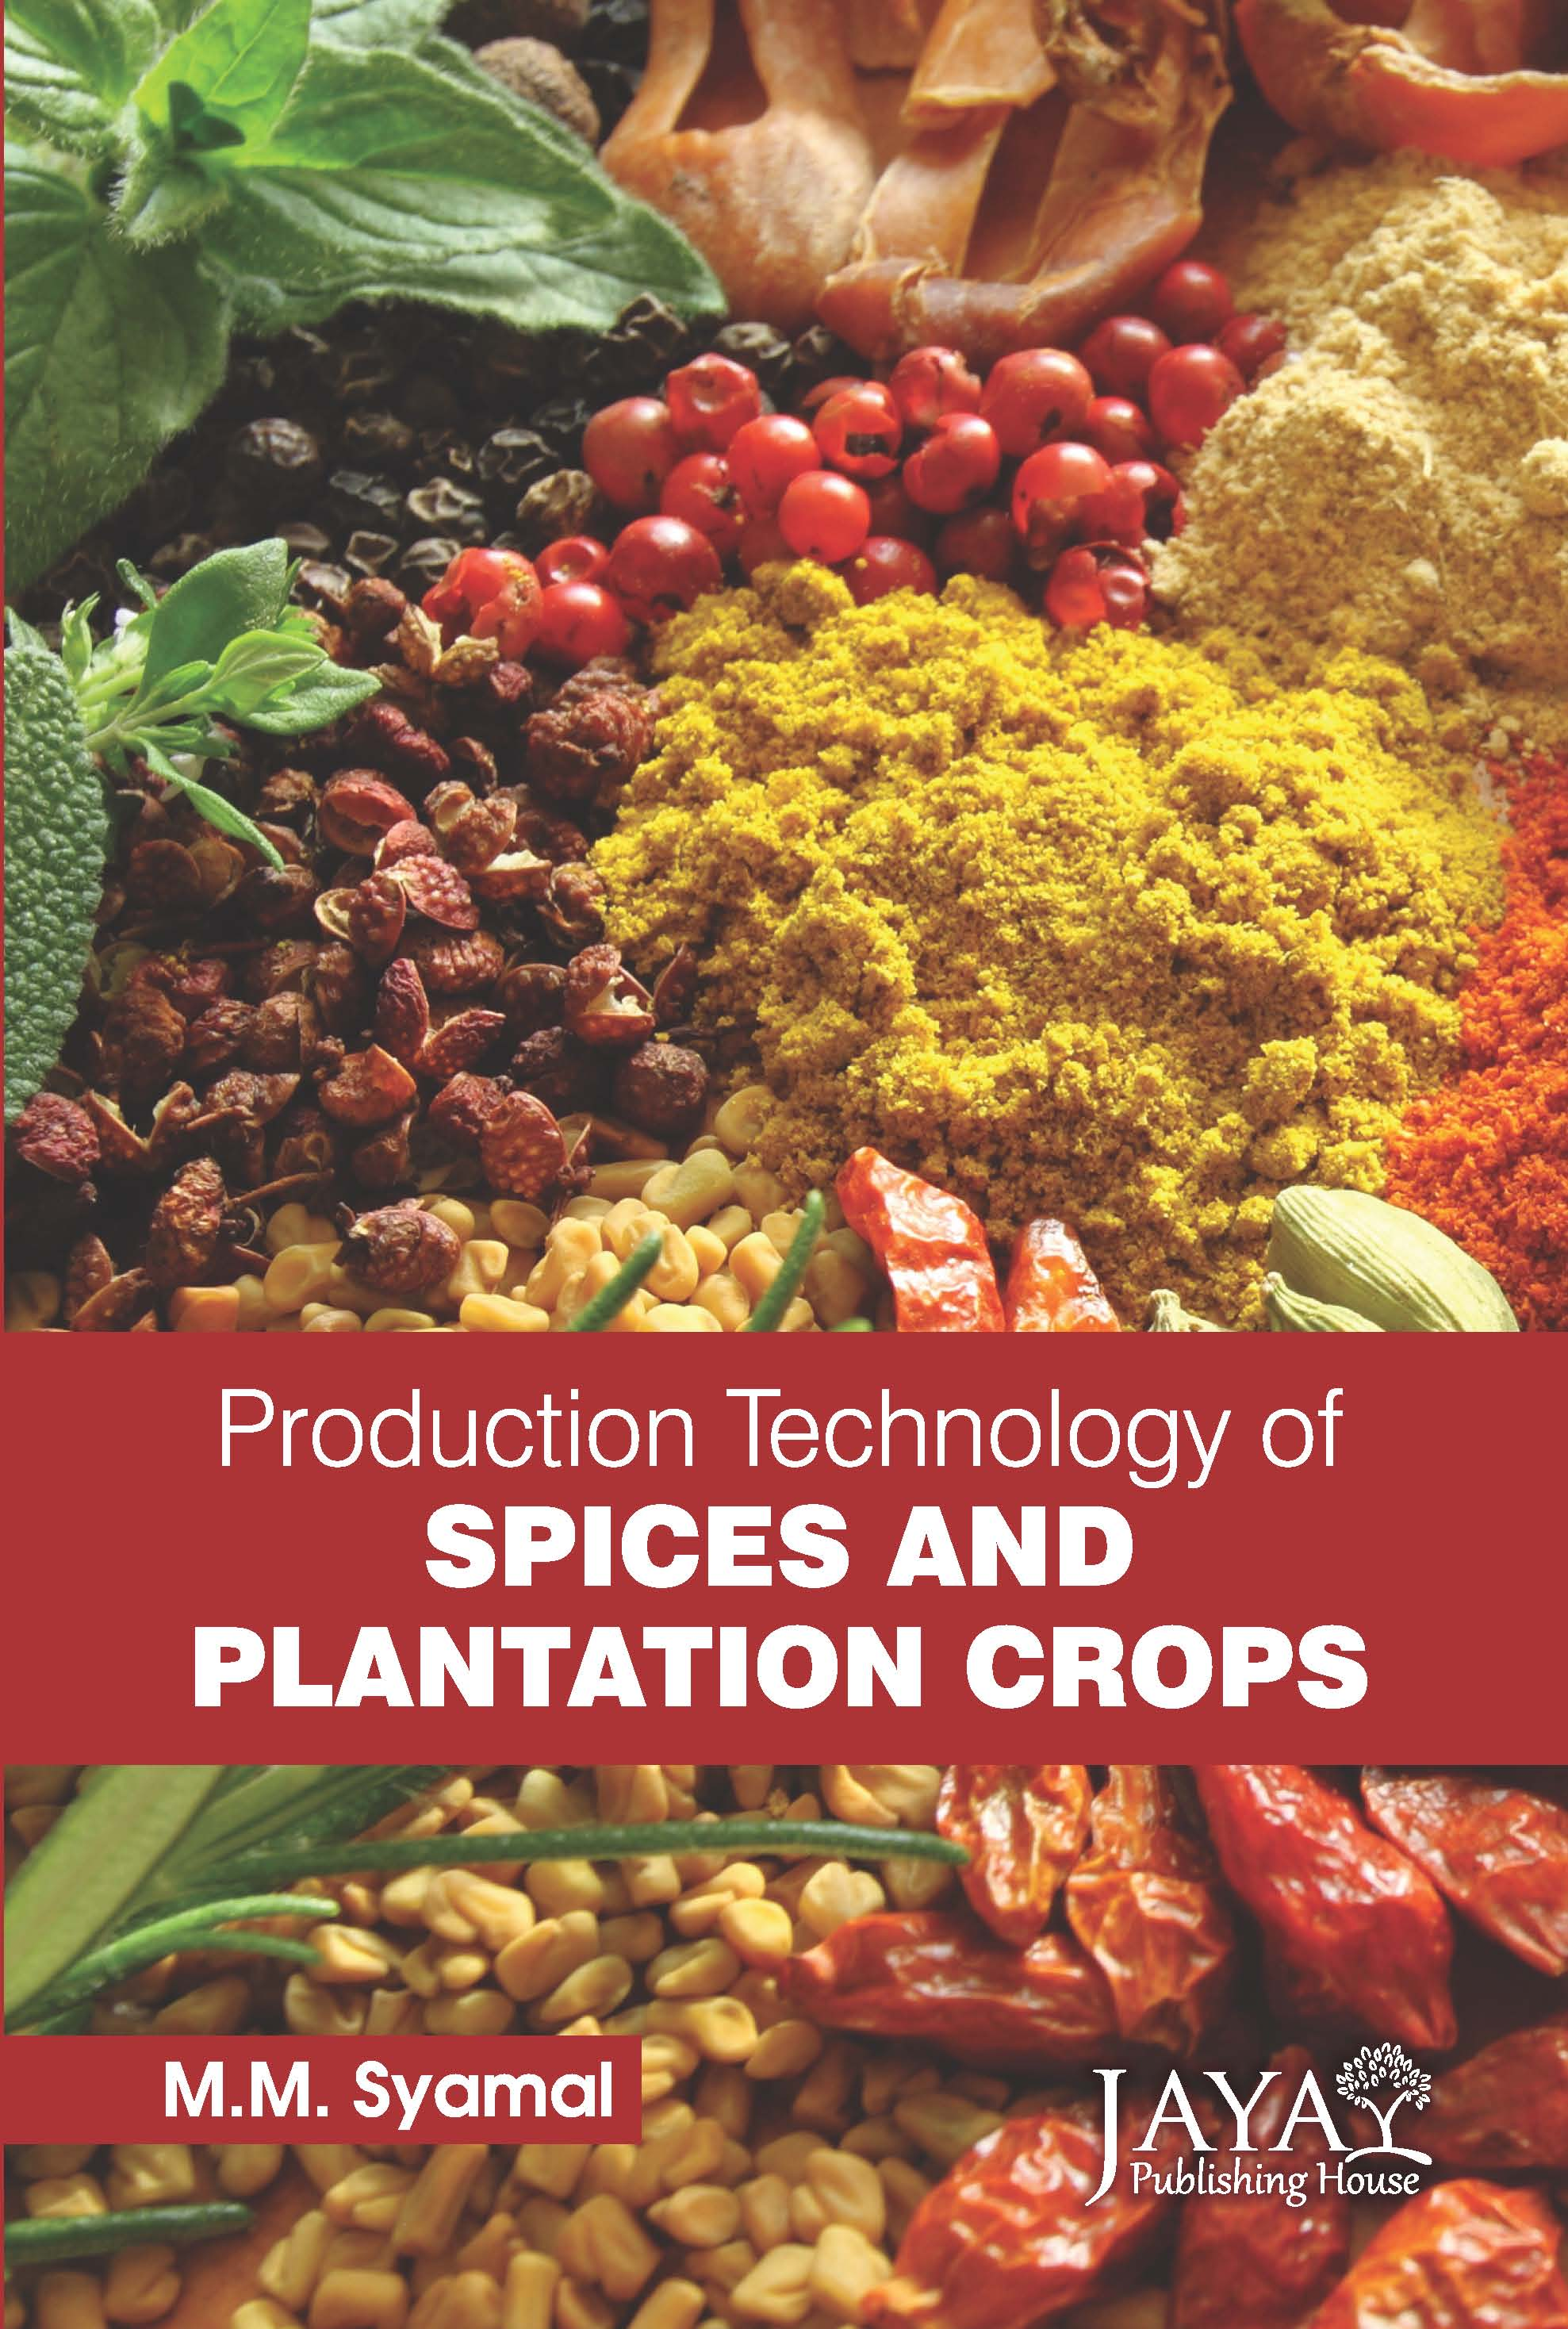 Production Technology of Spices and Plantation Crops